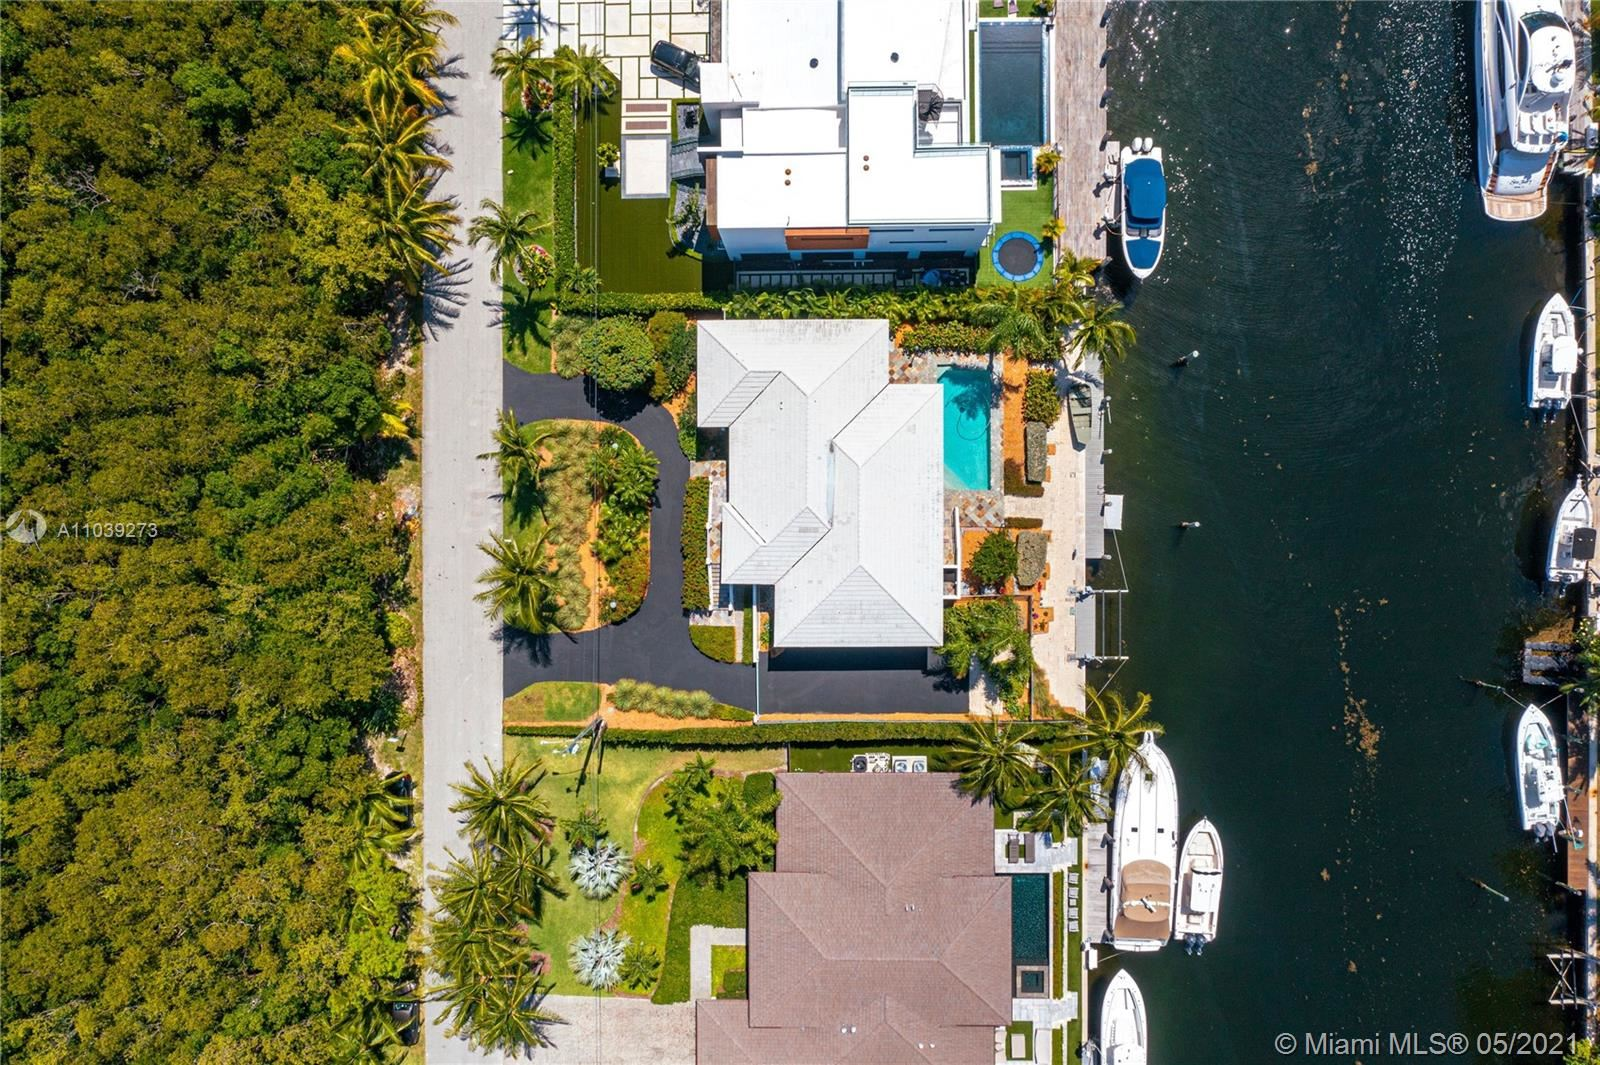 Photo of 930 Lugo Ave, Coral Gables, FL 33156 (MLS # A11039273)